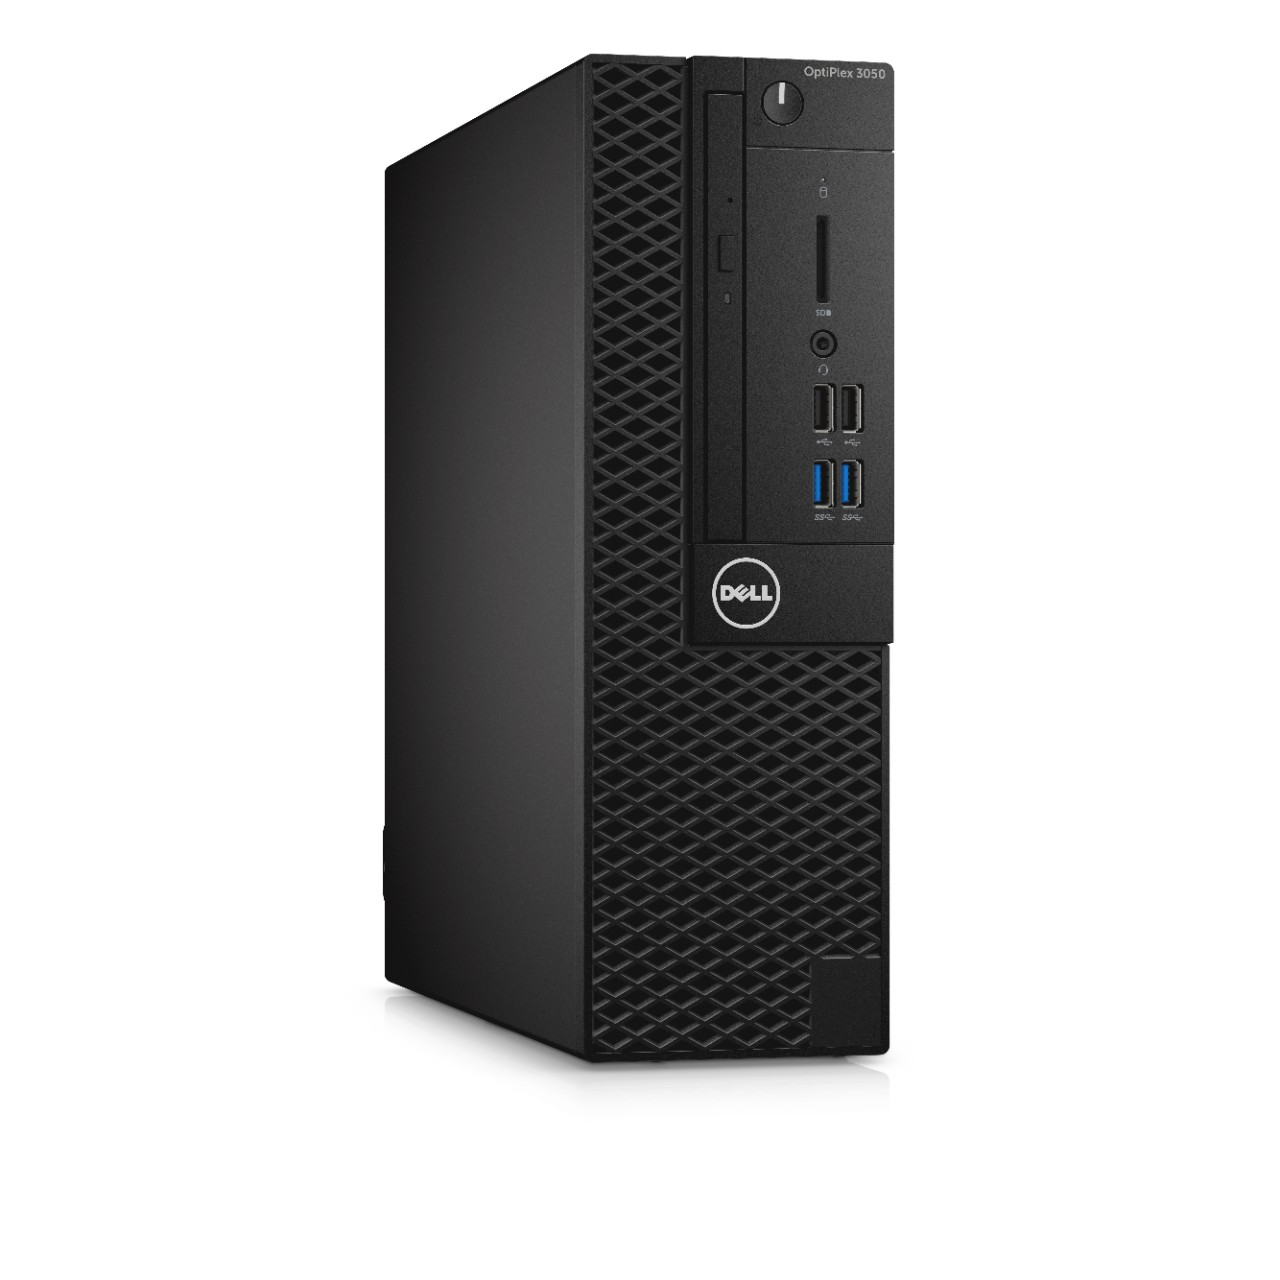 DELL OptiPlex SFF 3050 Core i5-7500/8GB/1TB/Intel HD/Win 10 Pro 64bit/3Yr NBD